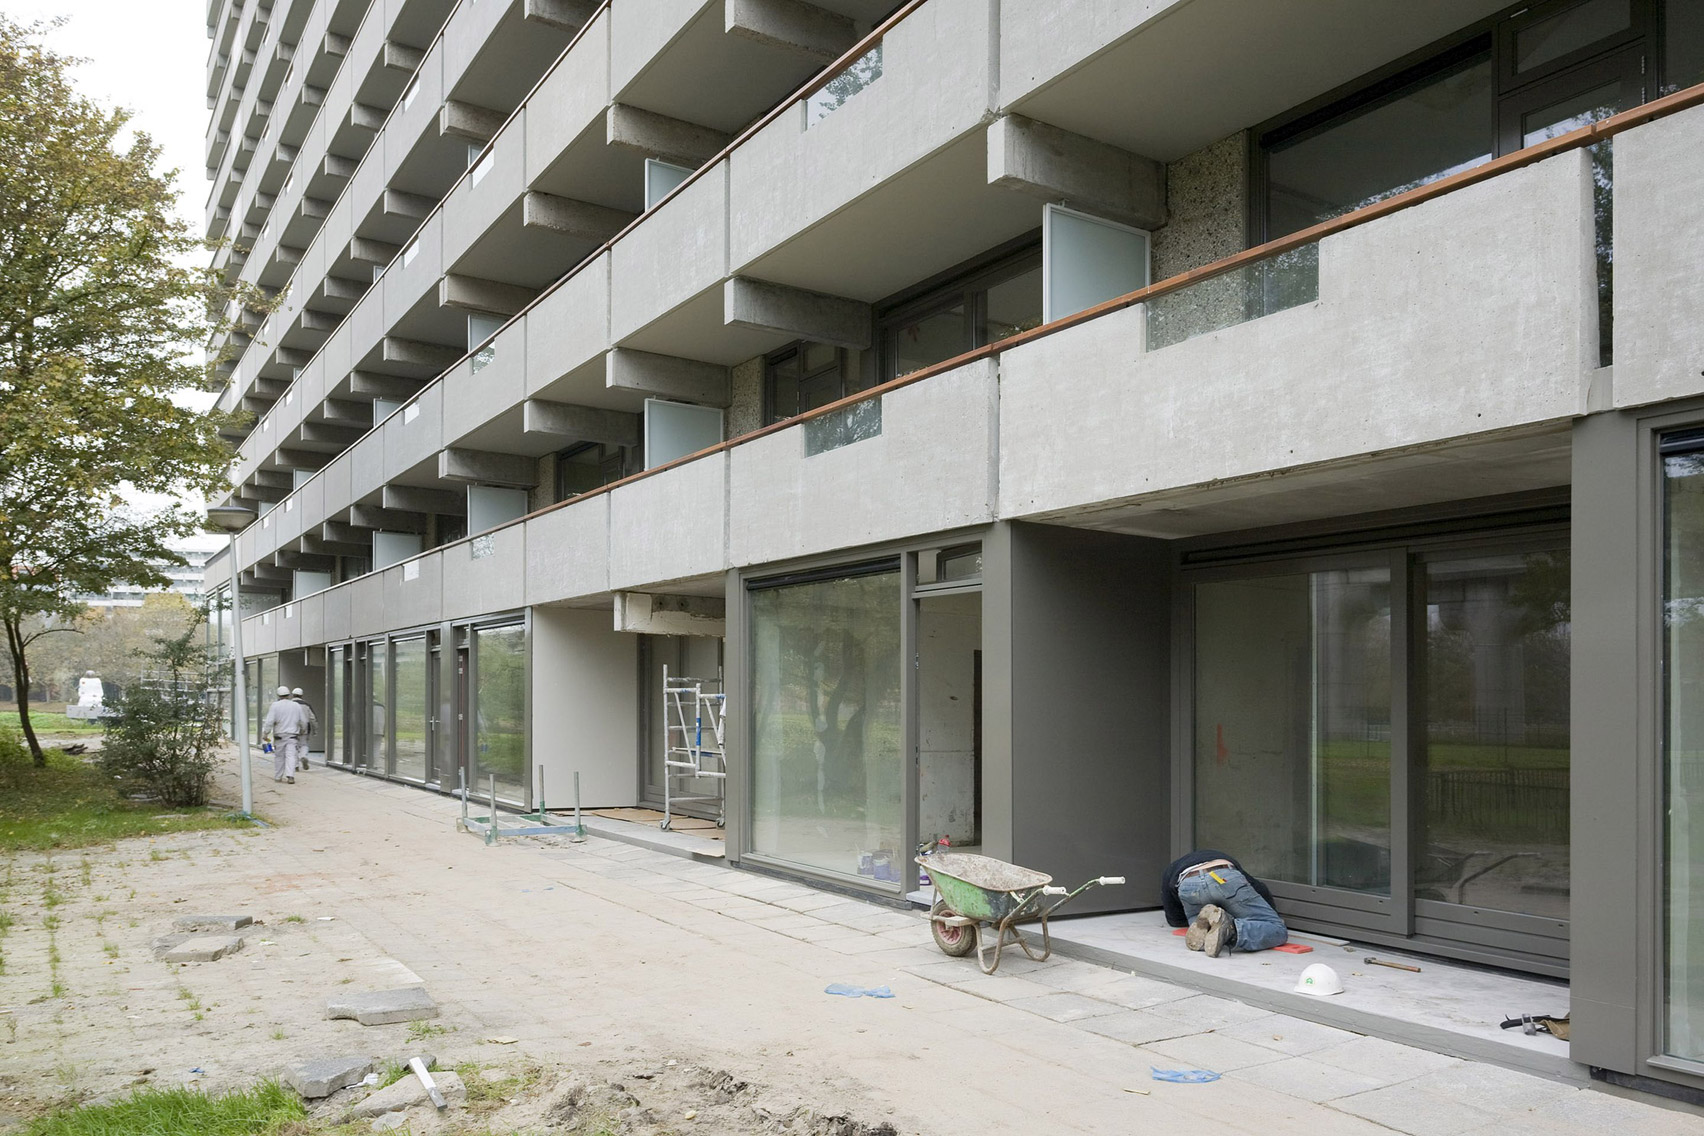 Unfinished homes touted as potential solution to the global housing crisis